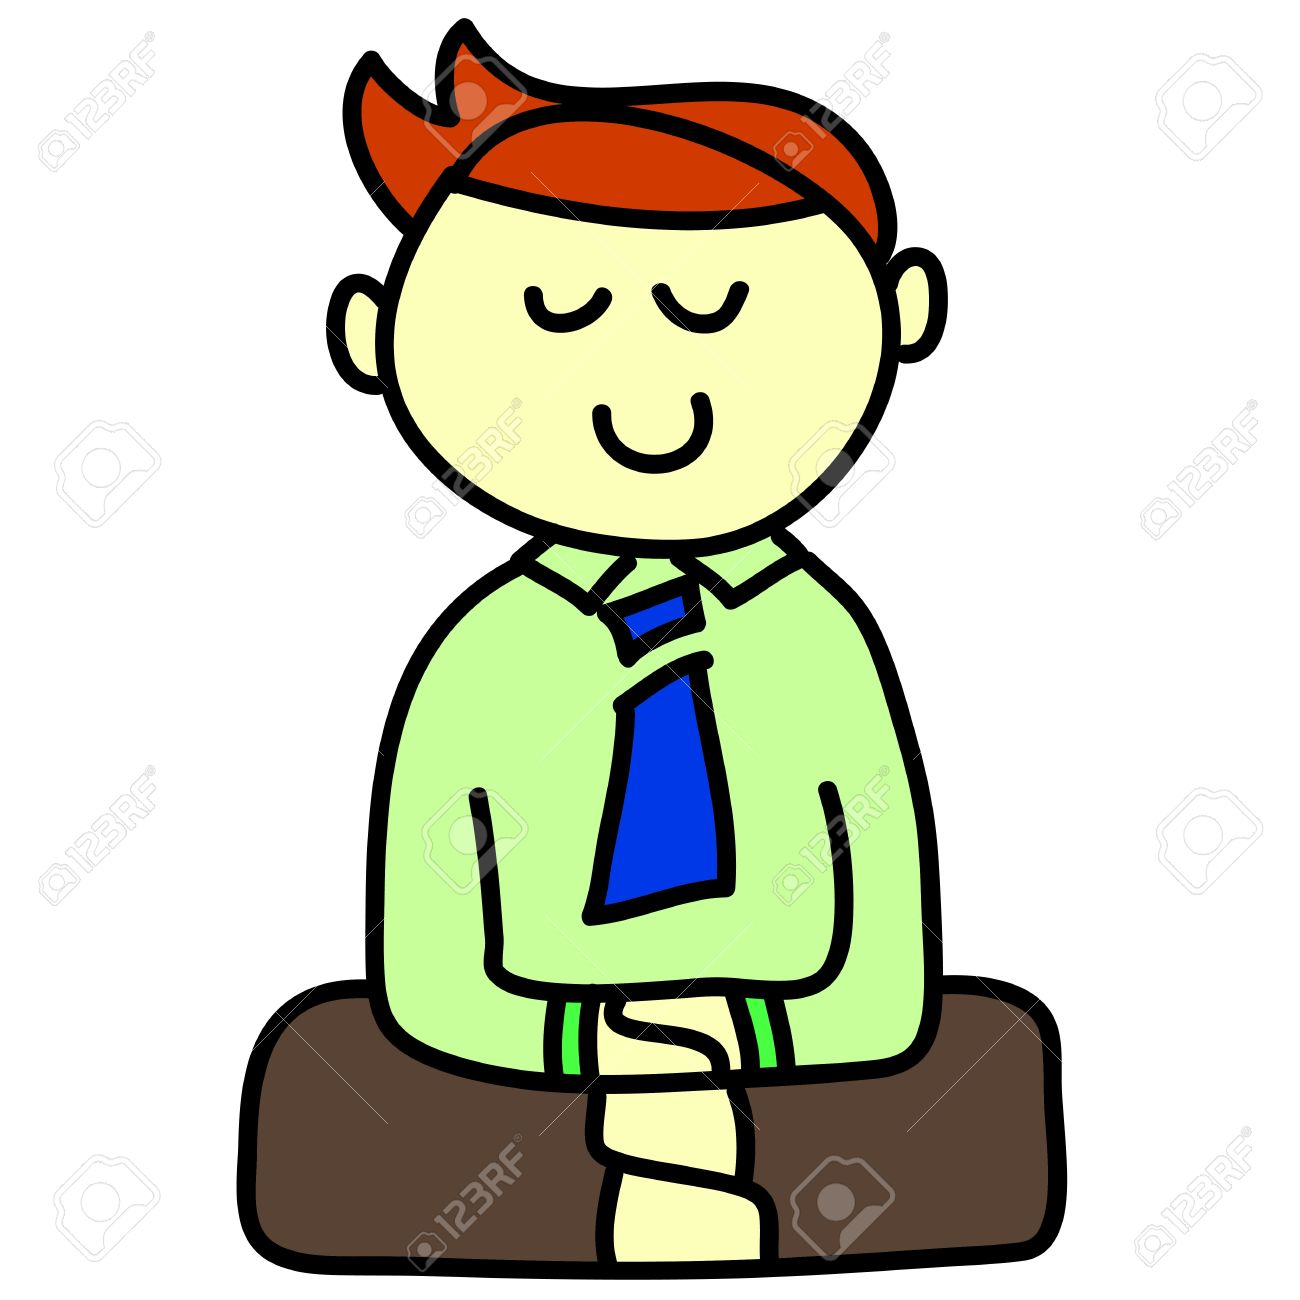 Free collection download and. Calm clipart calm person